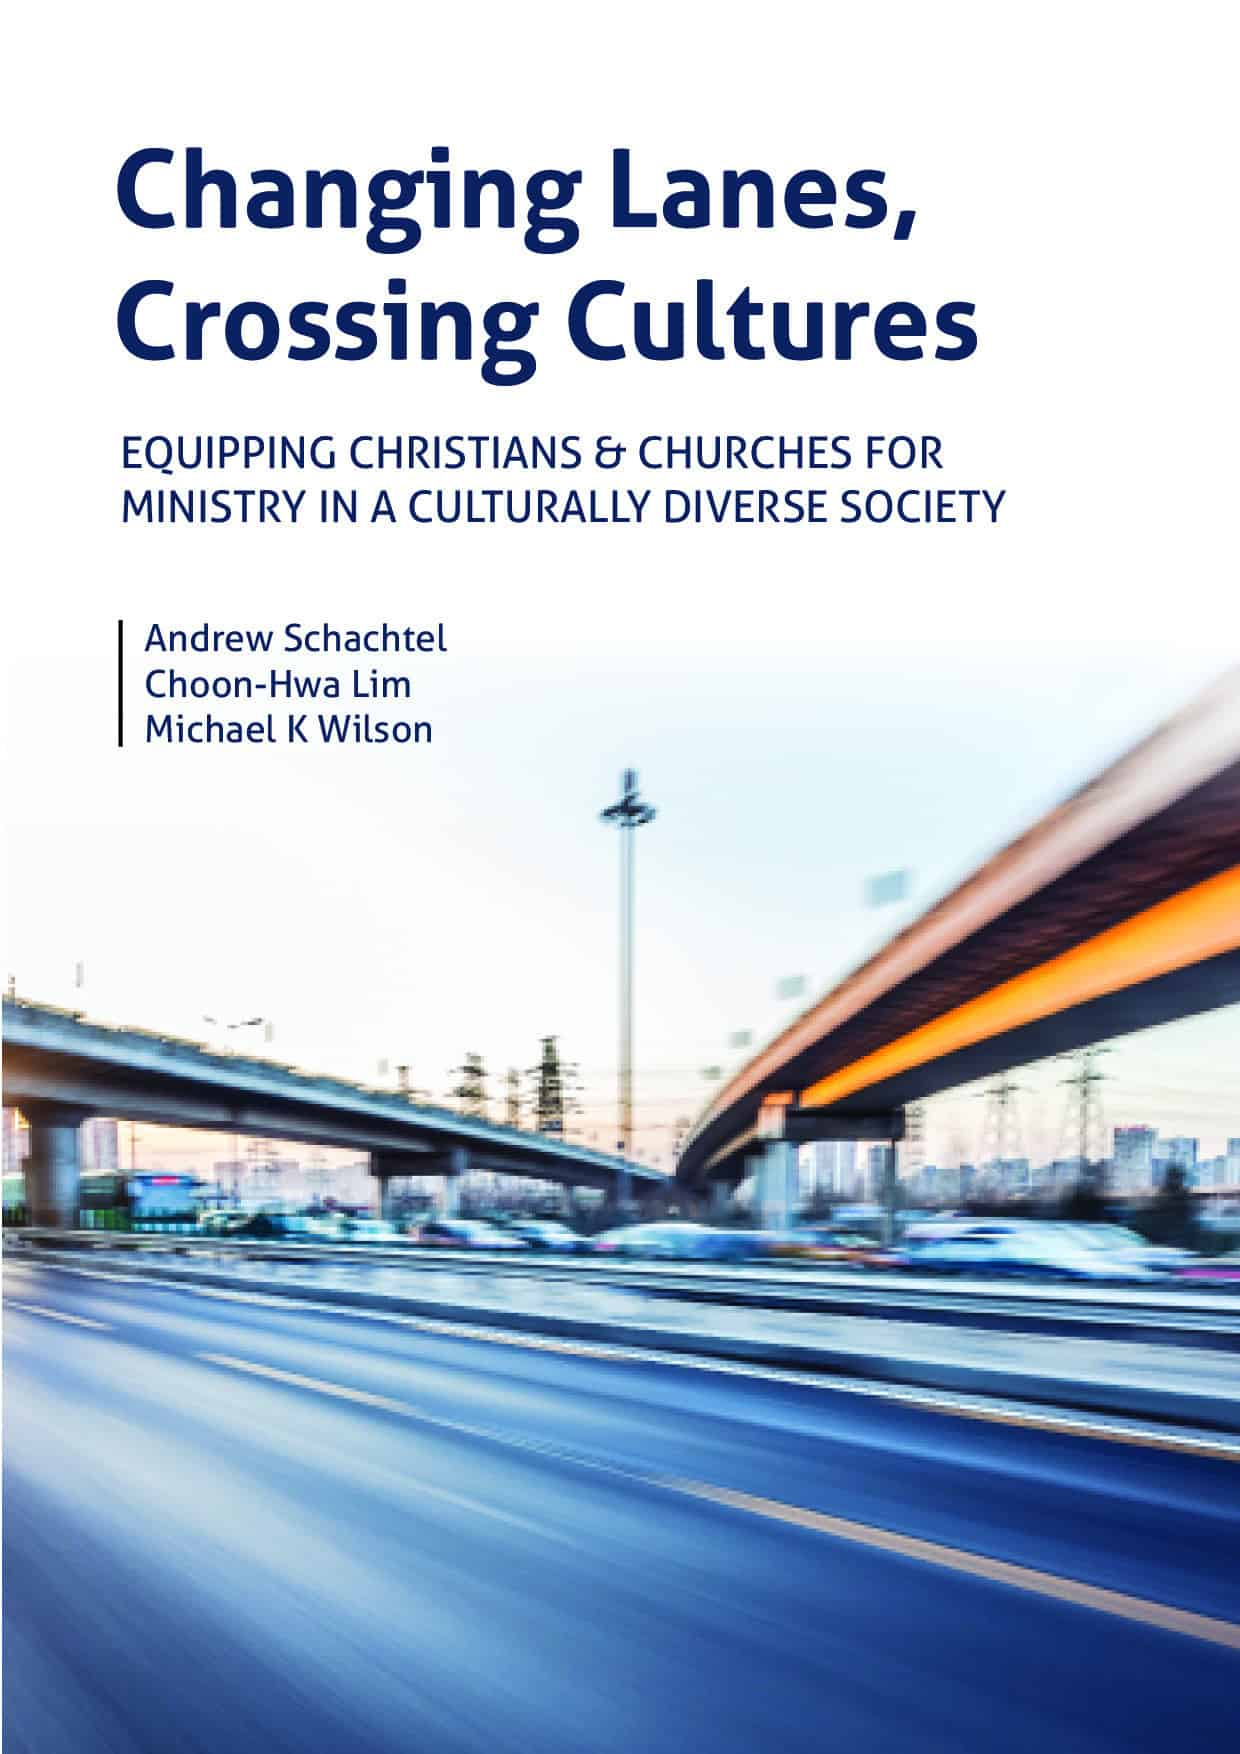 Changing Lanes, Crossing Cultures - Interserve Australia